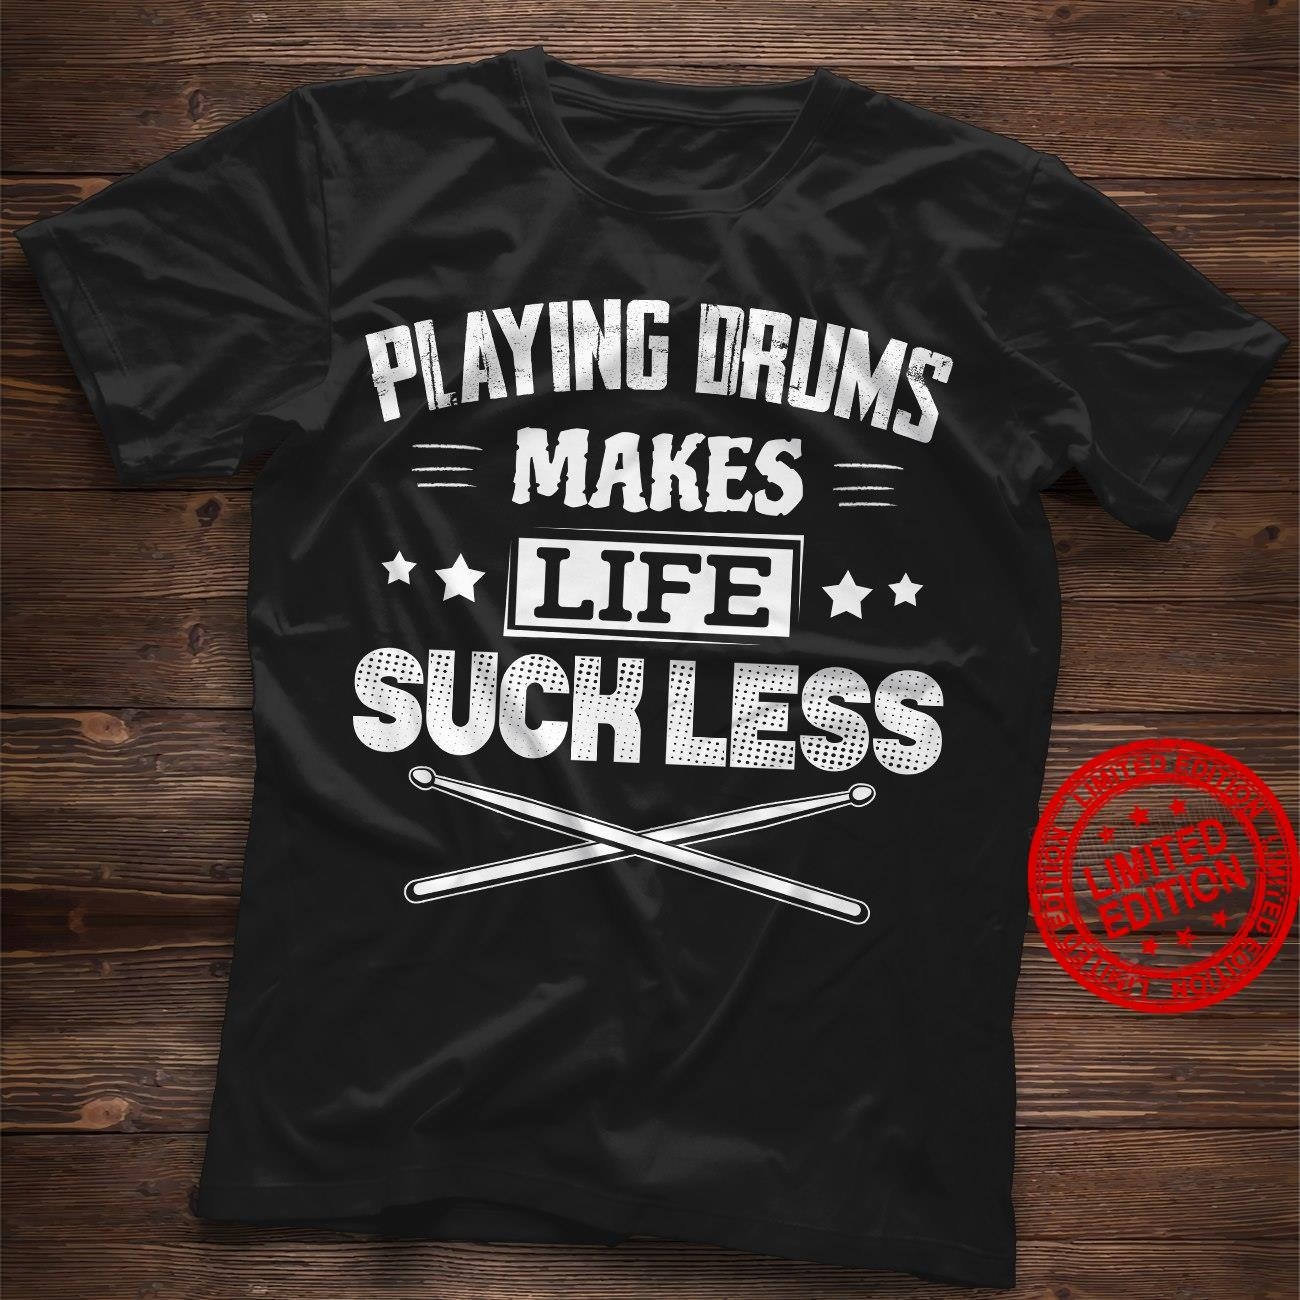 Playing Drums Makes Life Suck Less Shirt